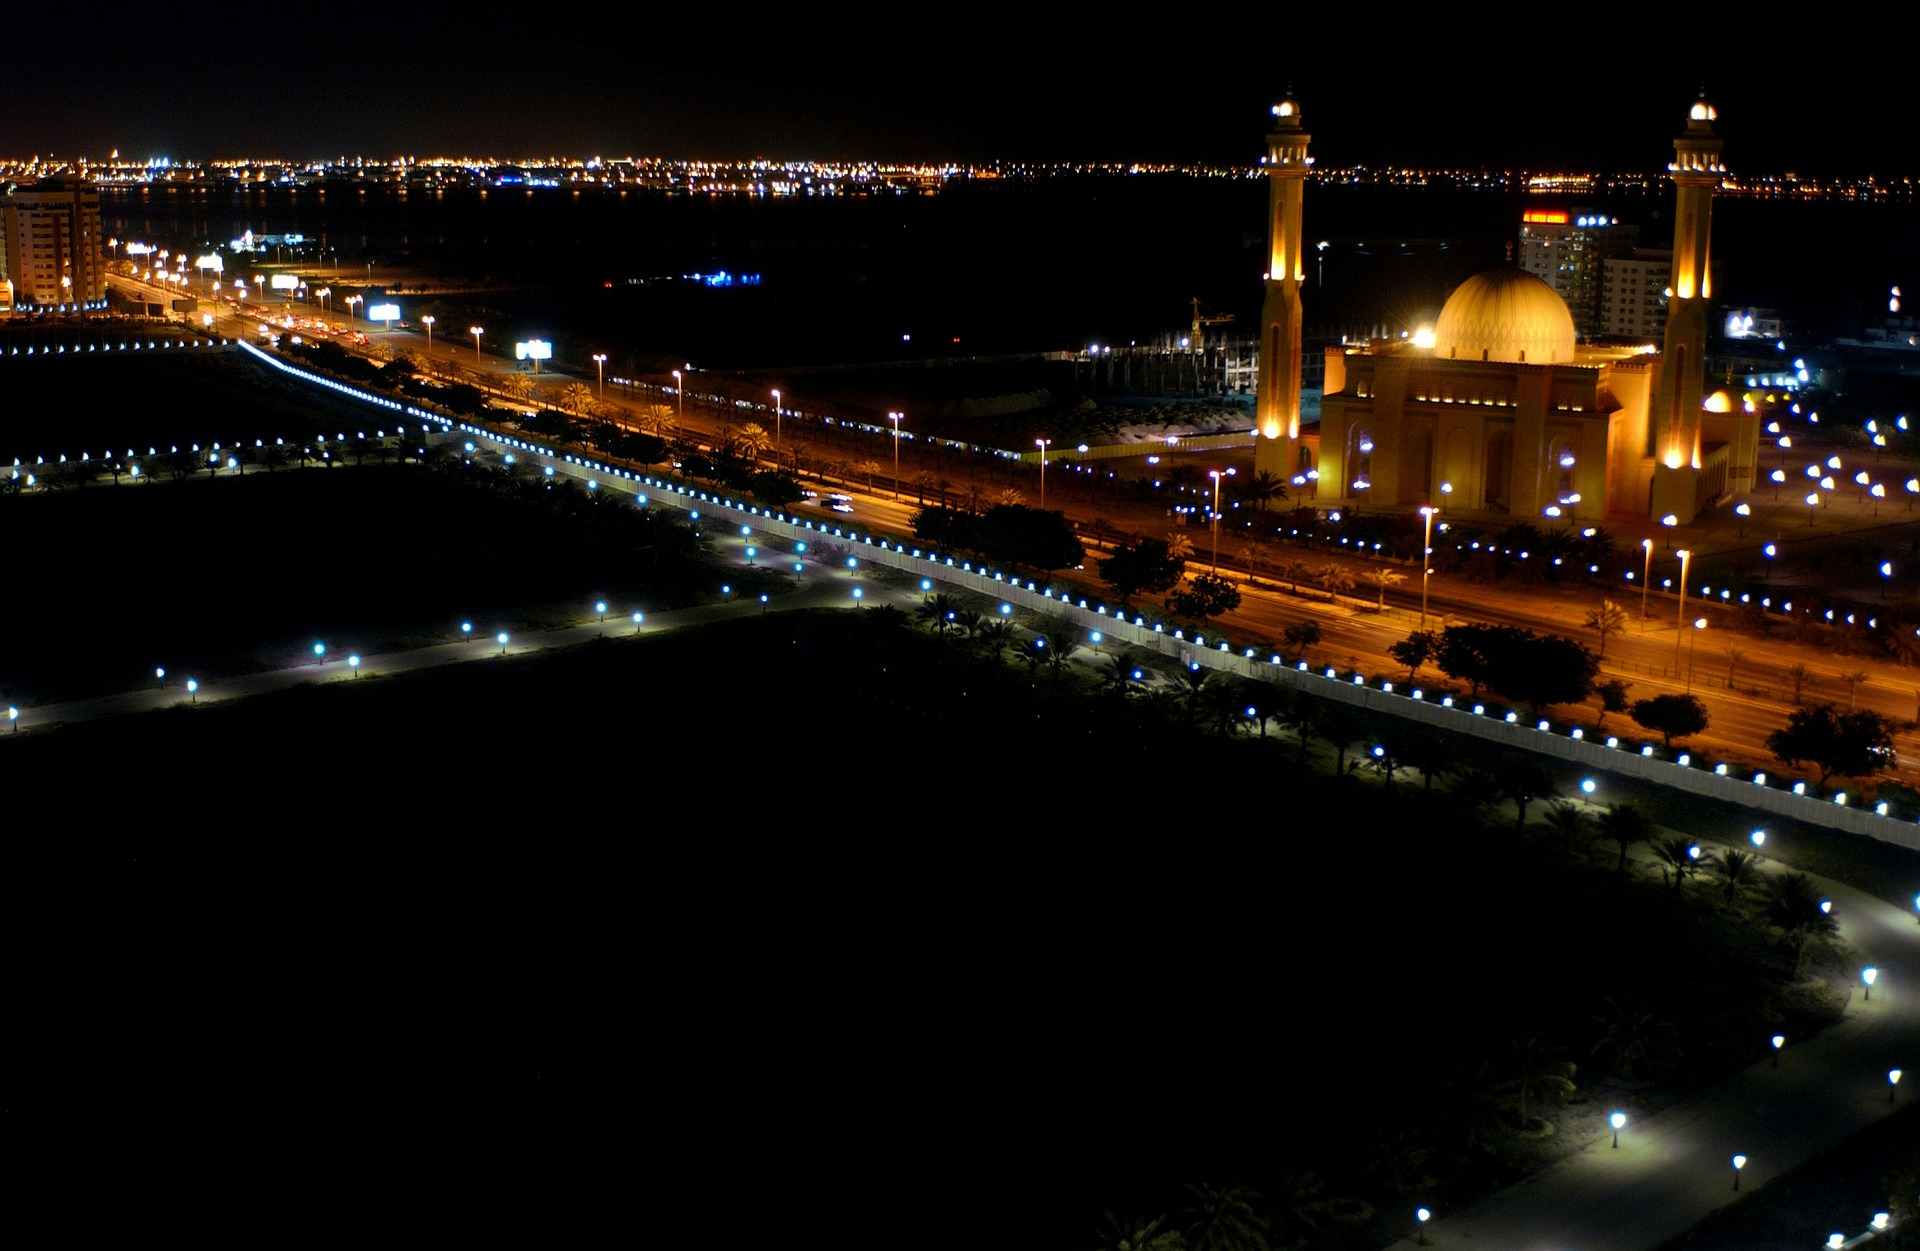 Skyline view of Bahrain Mosque at night